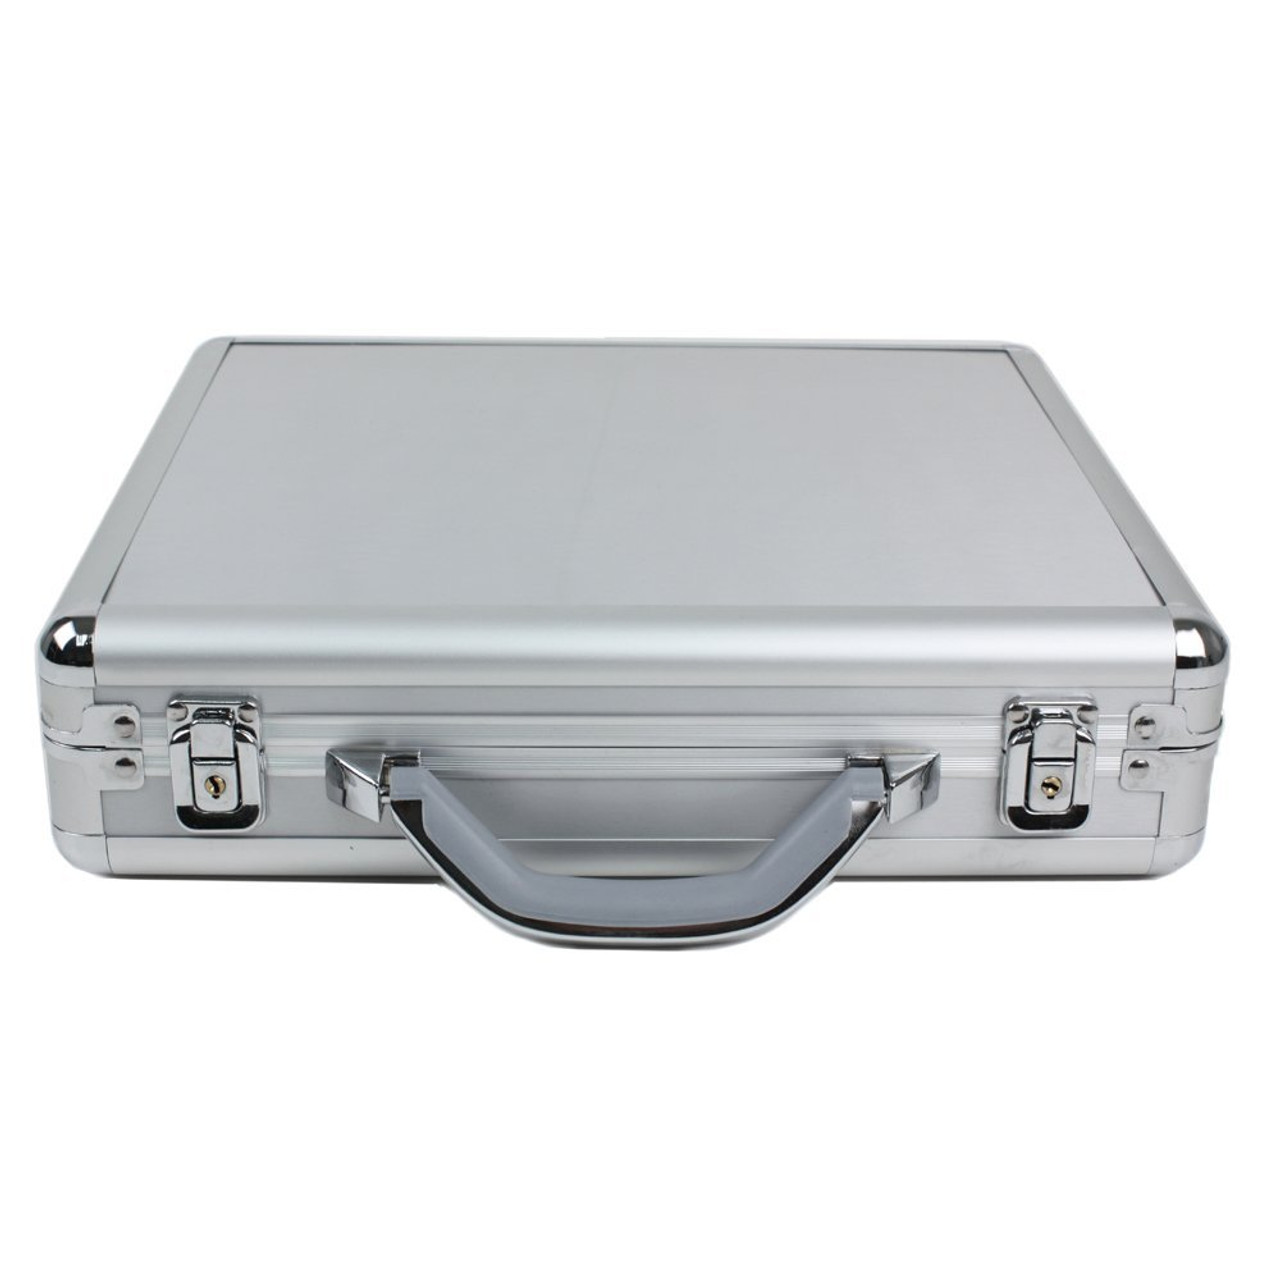 Watch Case for 18 Watches Collectors BriefCase Aluminum With Handle